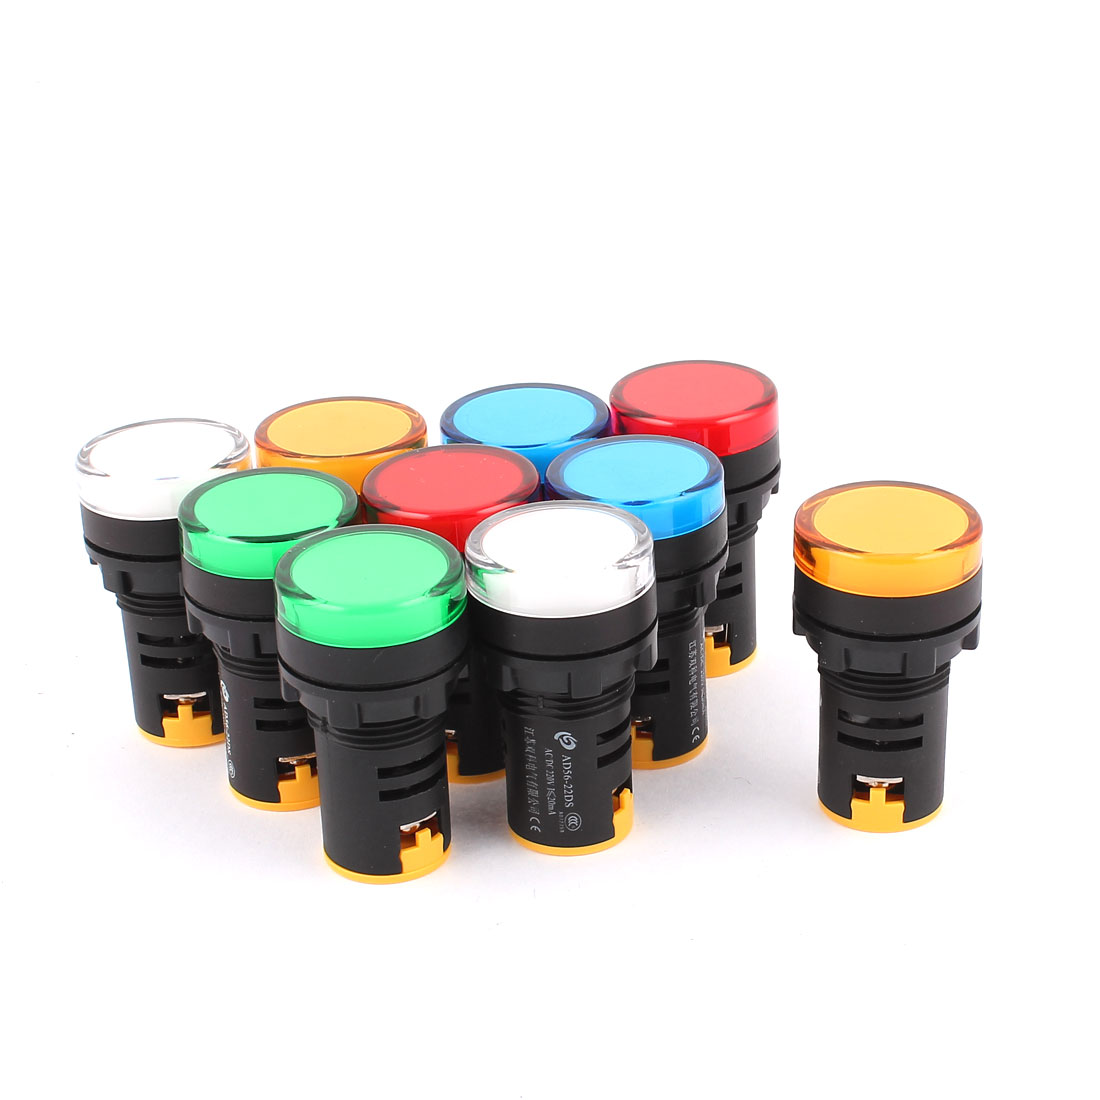 10 Pcs AC/DC 220V Colorful LED Pilot Signal Indicator Light